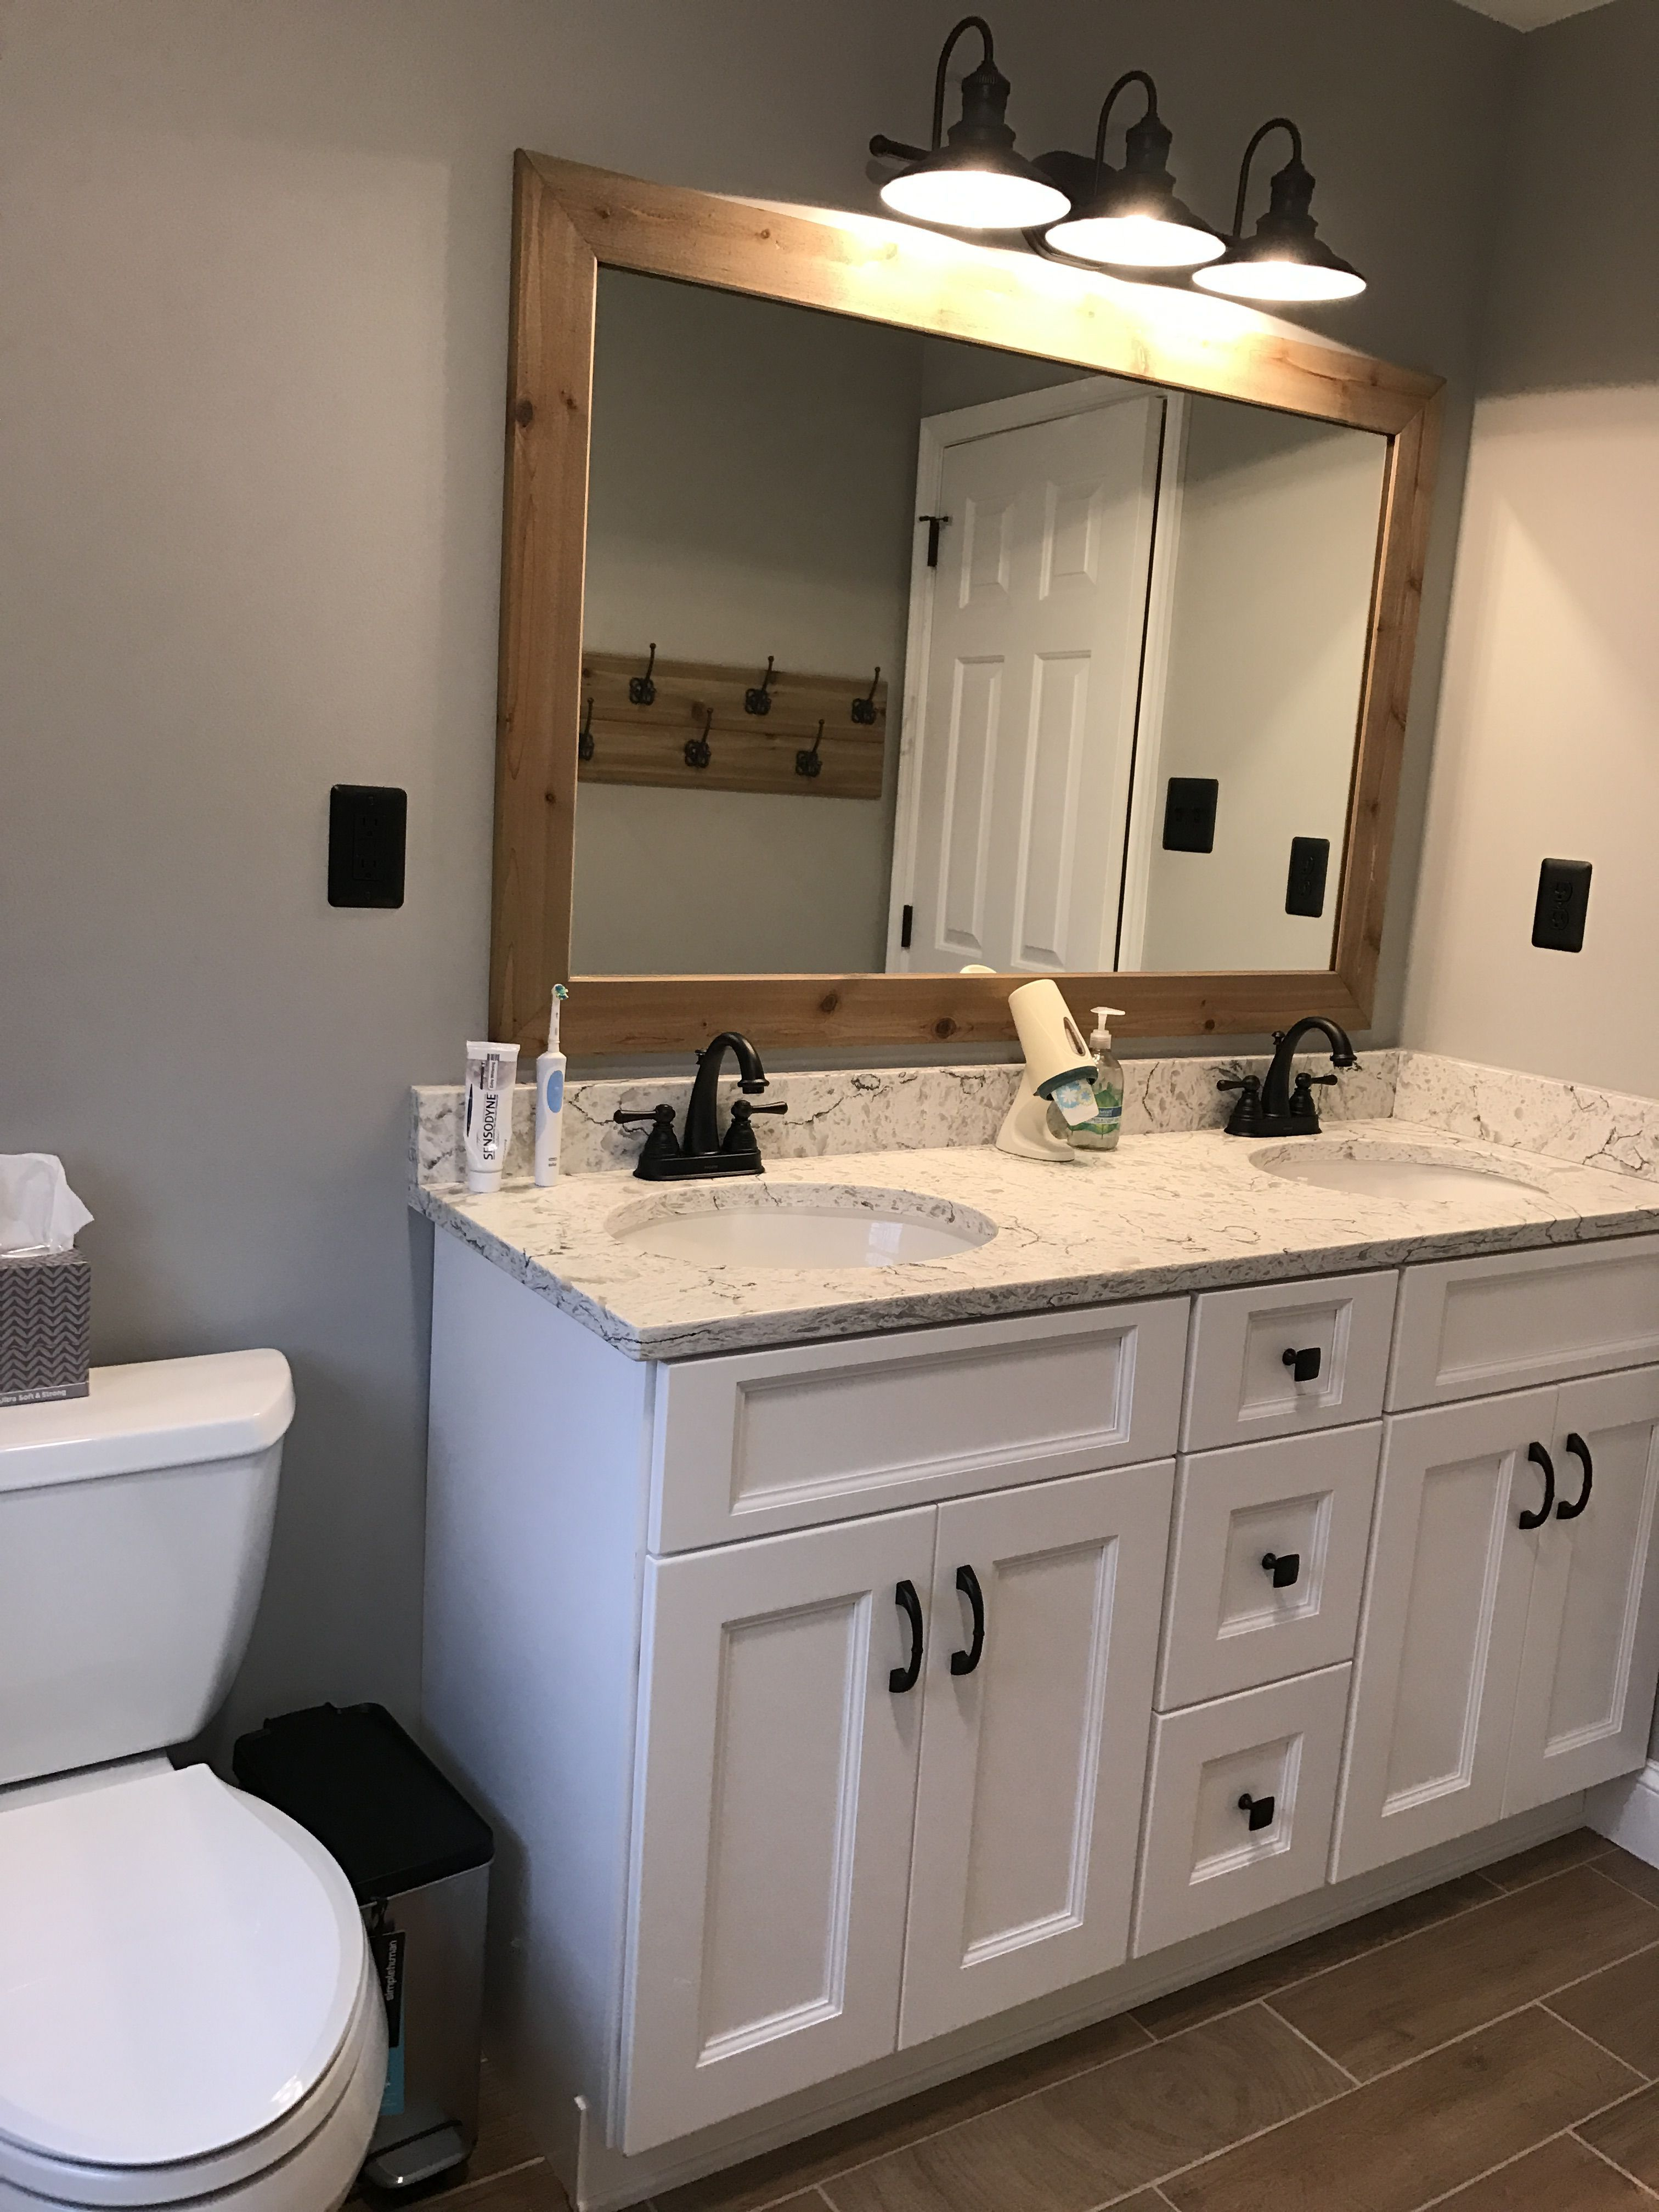 21+ Best Bathroom Mirrors Design Ideas to Reflect Your Style images